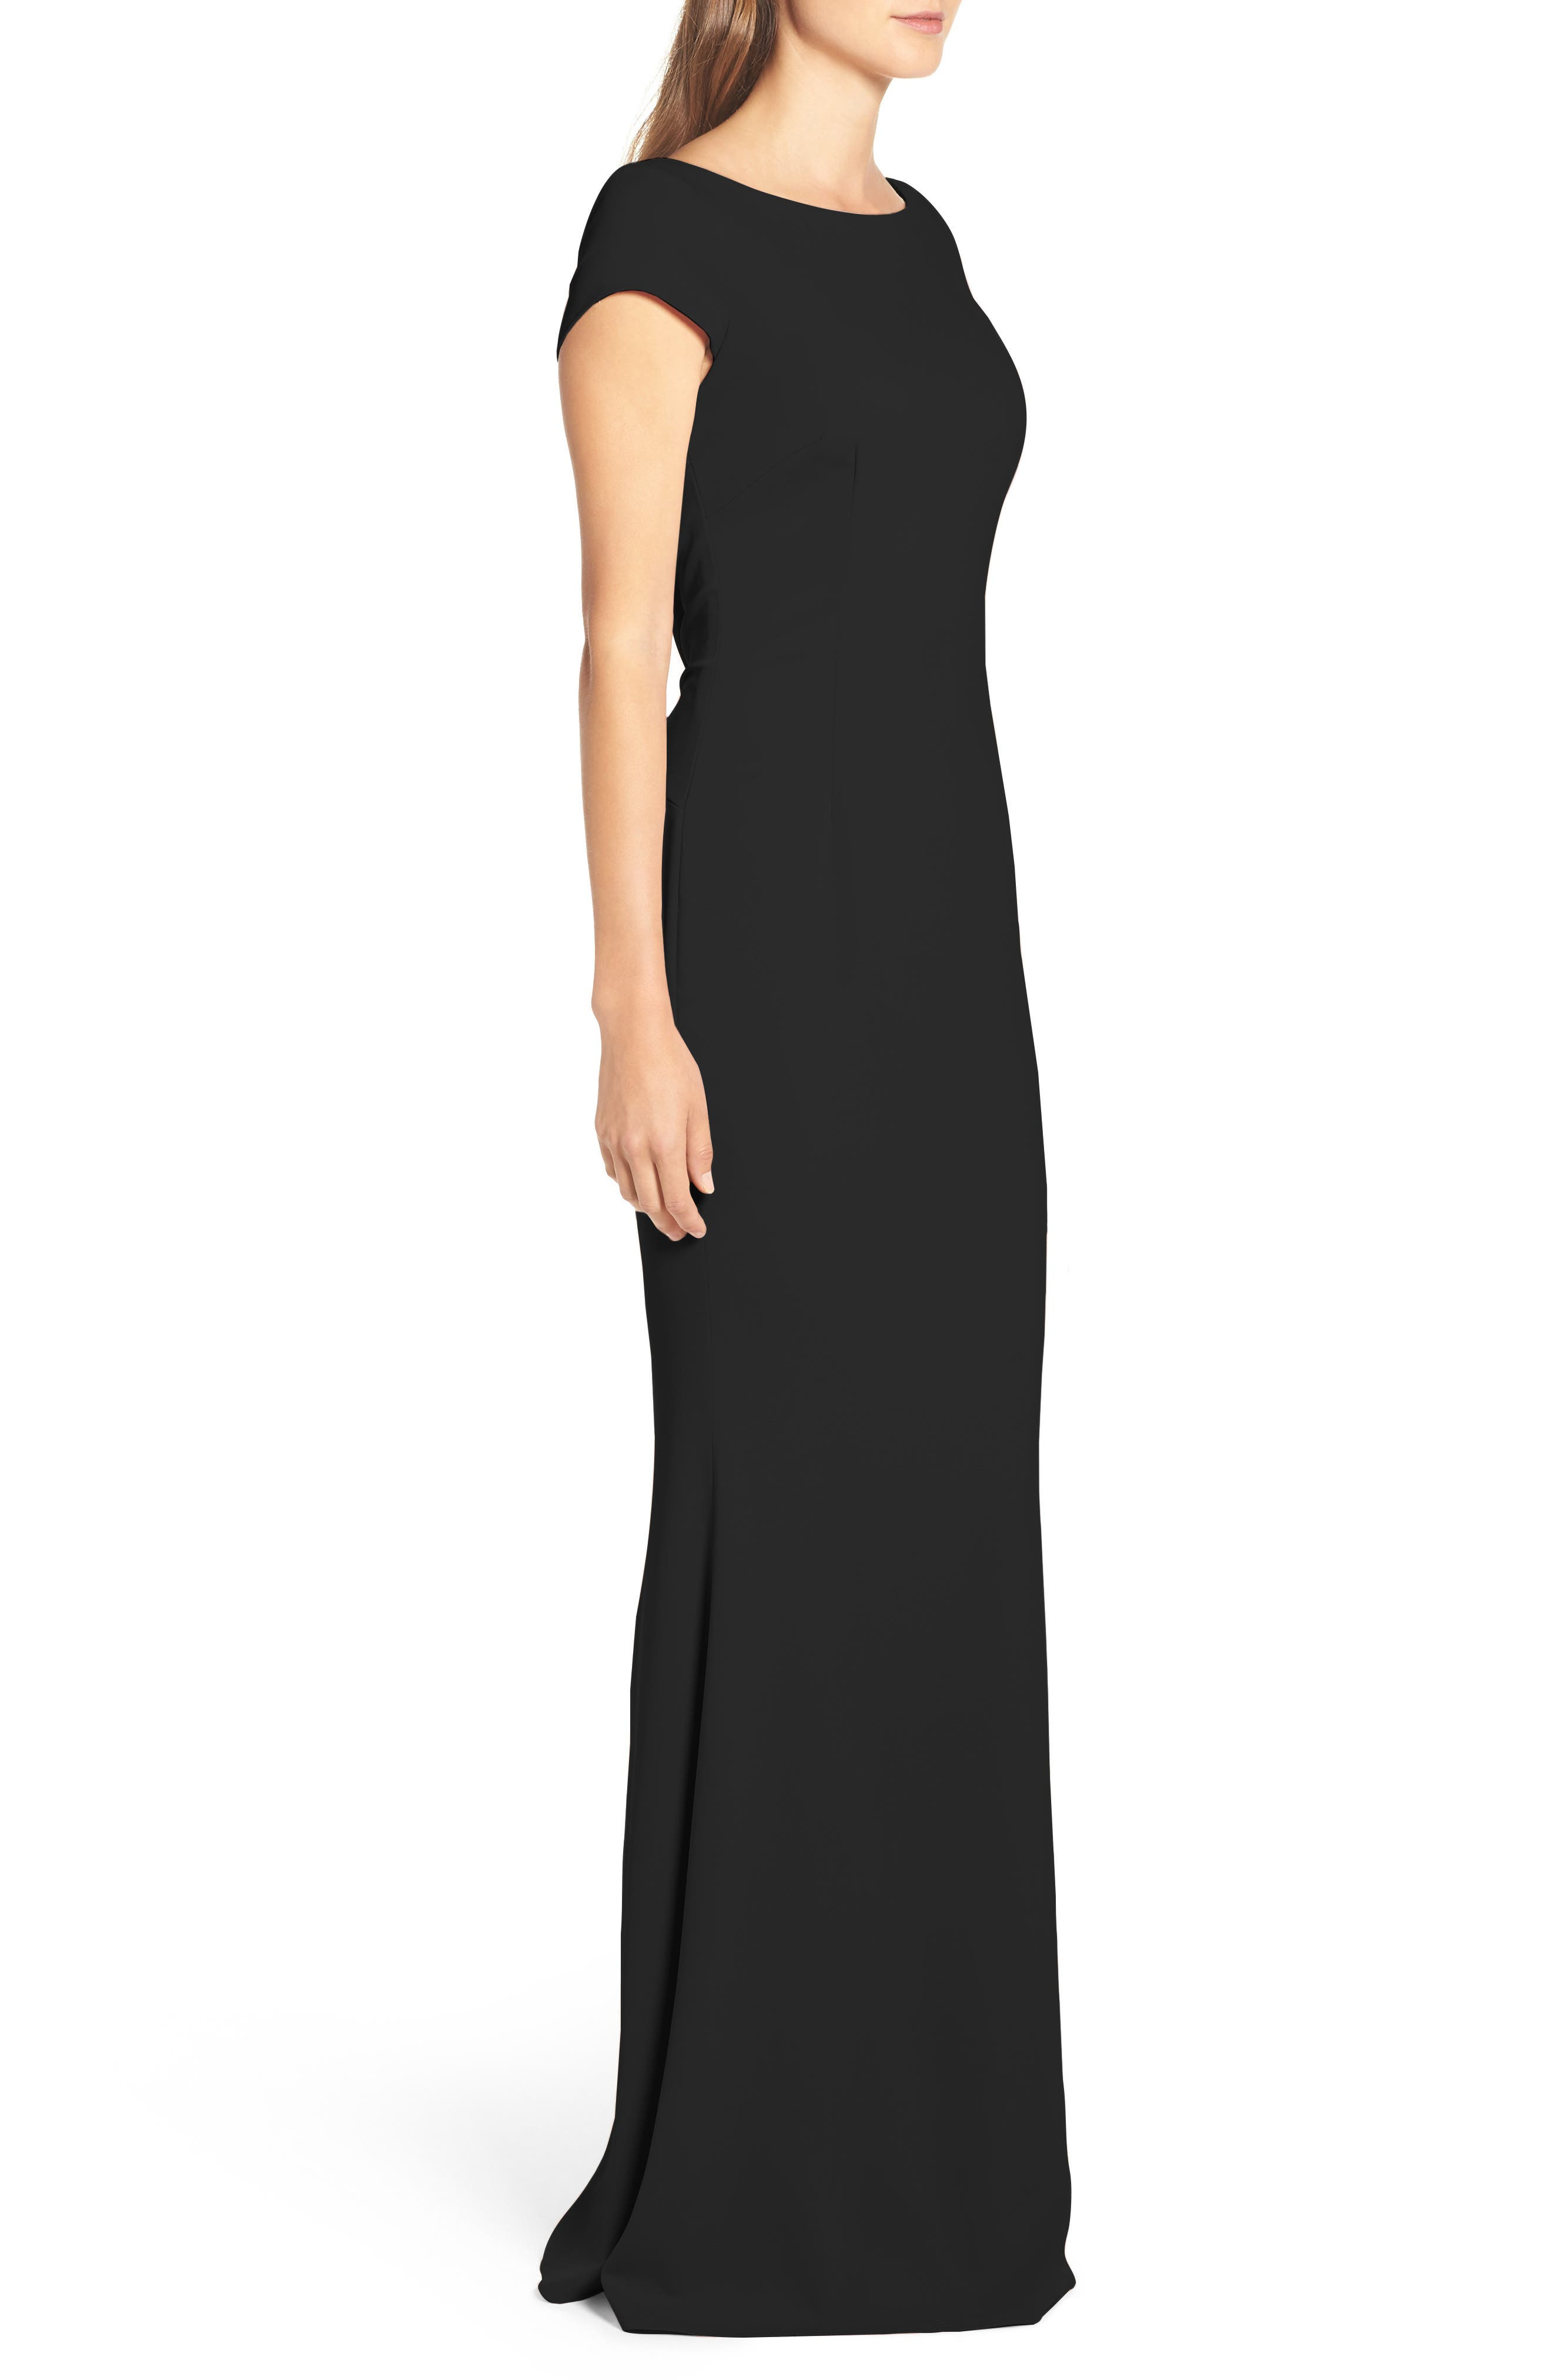 Intrigue Plunge Knot Back Gown,                             Alternate thumbnail 3, color,                             BLACK